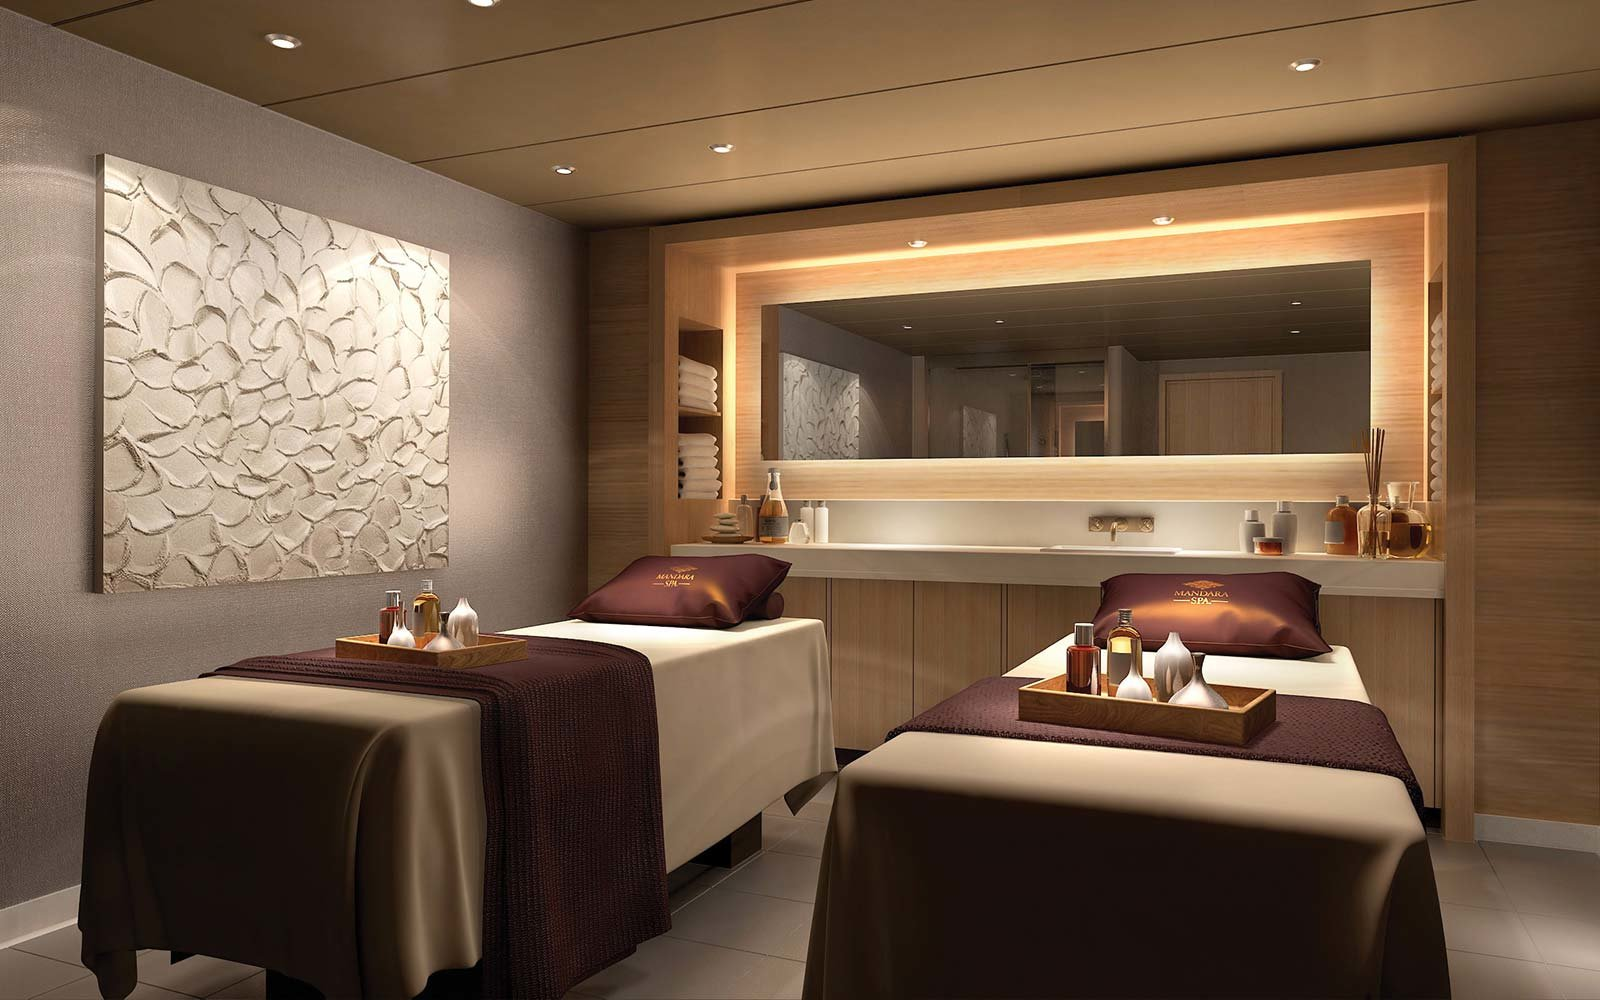 This New Cruise Ship Is Bringing a Gokart Track Luxe Spa